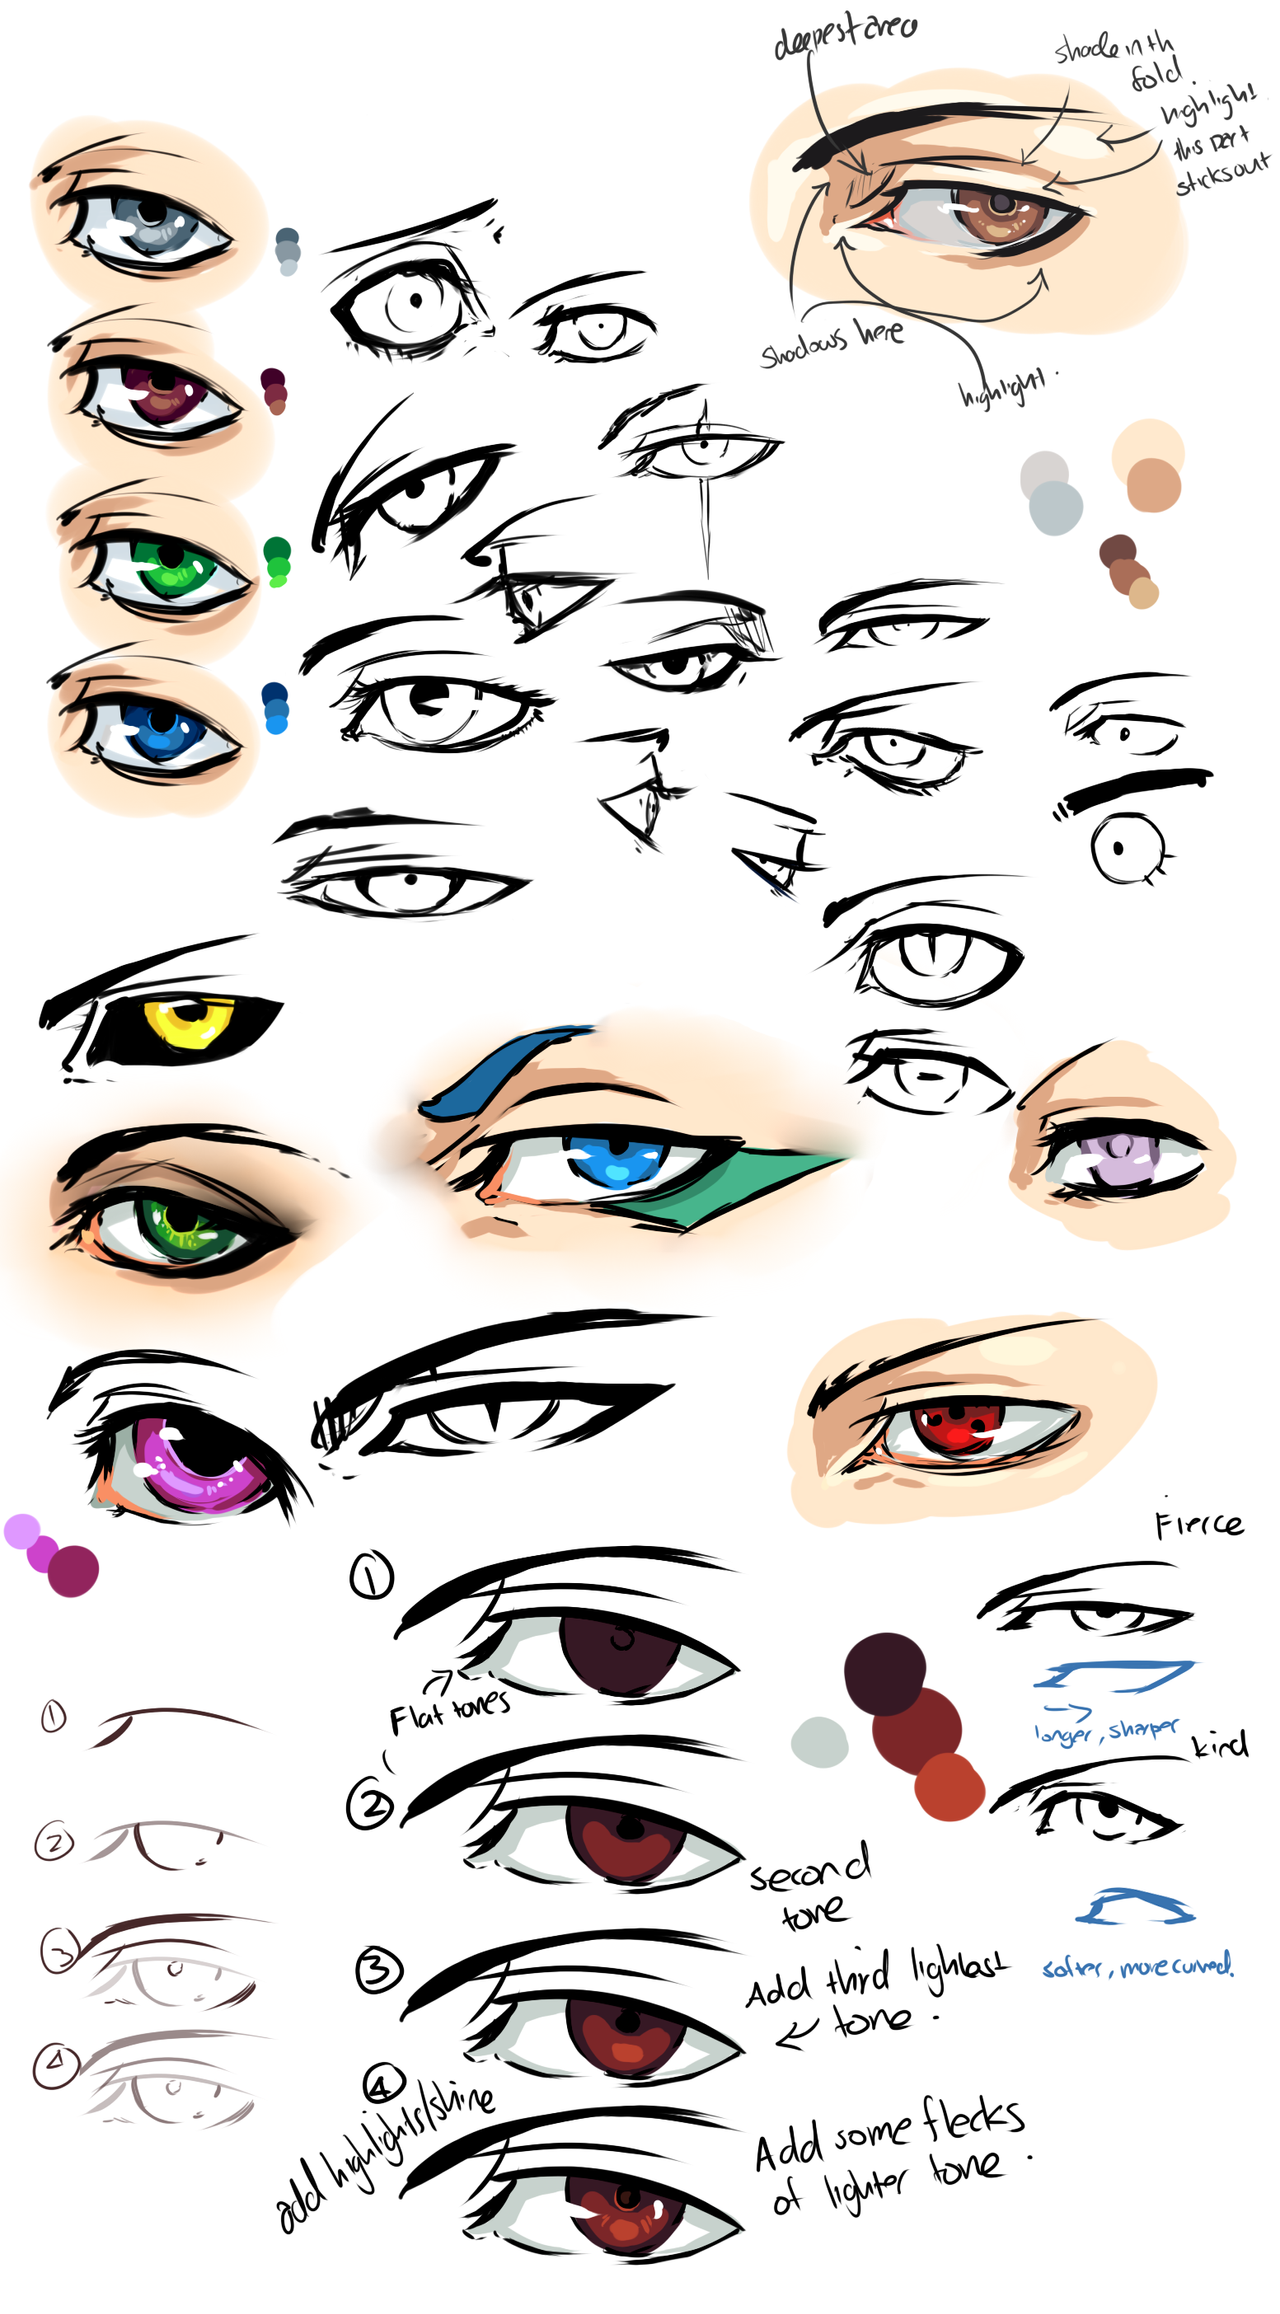 Anime eyes and Tips by moni158 on DeviantArt